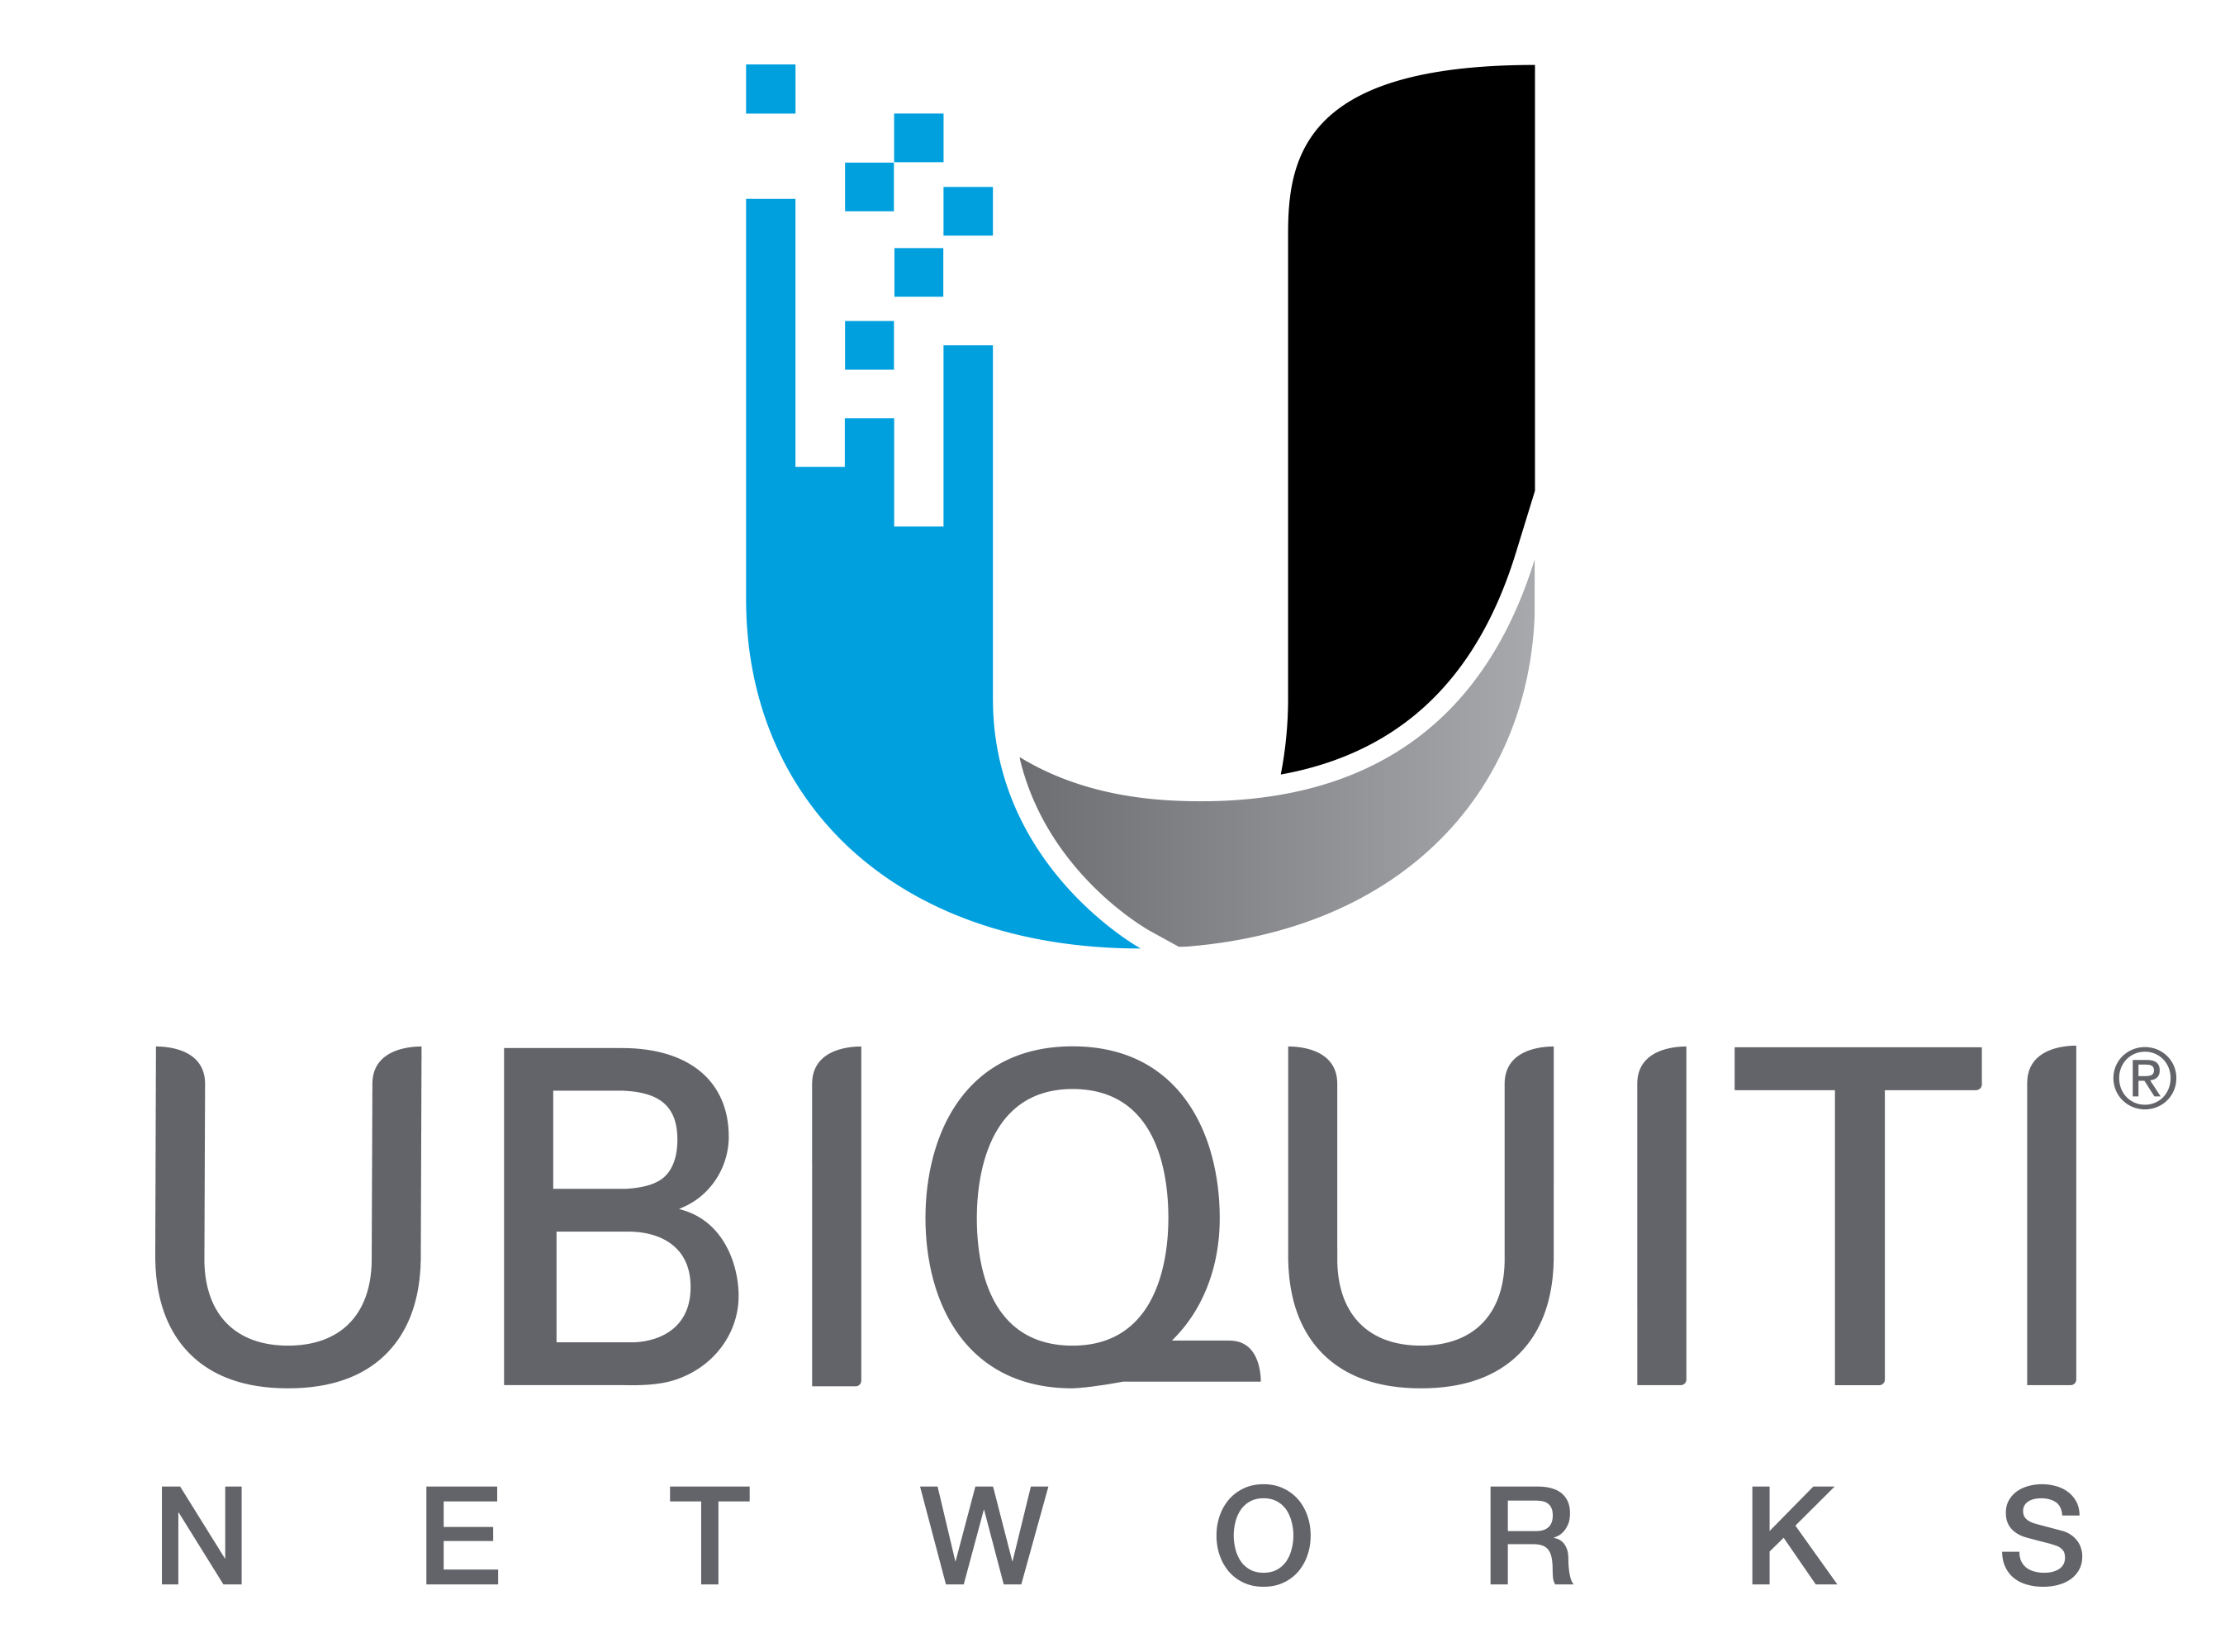 pnghut_ubiquiti-networks-computer-network-wireless-wi-fi-unifi-switch-trademark_z6pnWD0CaF